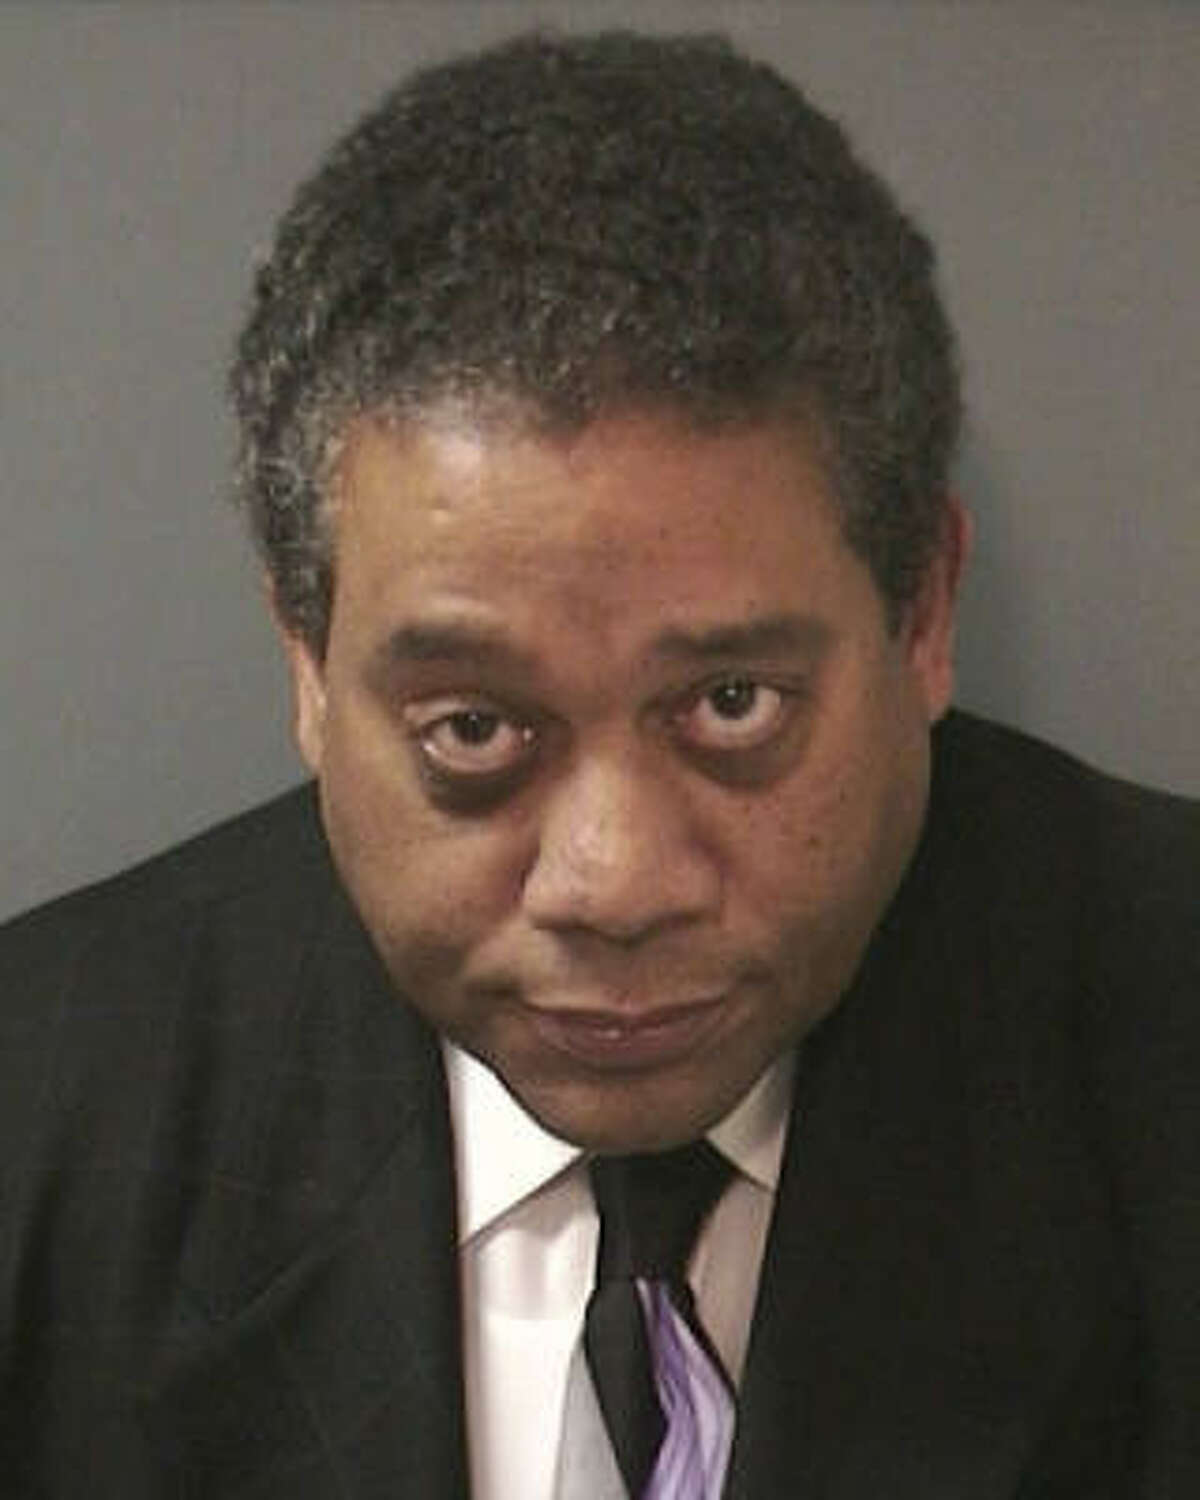 Former financial services director Edwin Harrison declined comment about allegations.